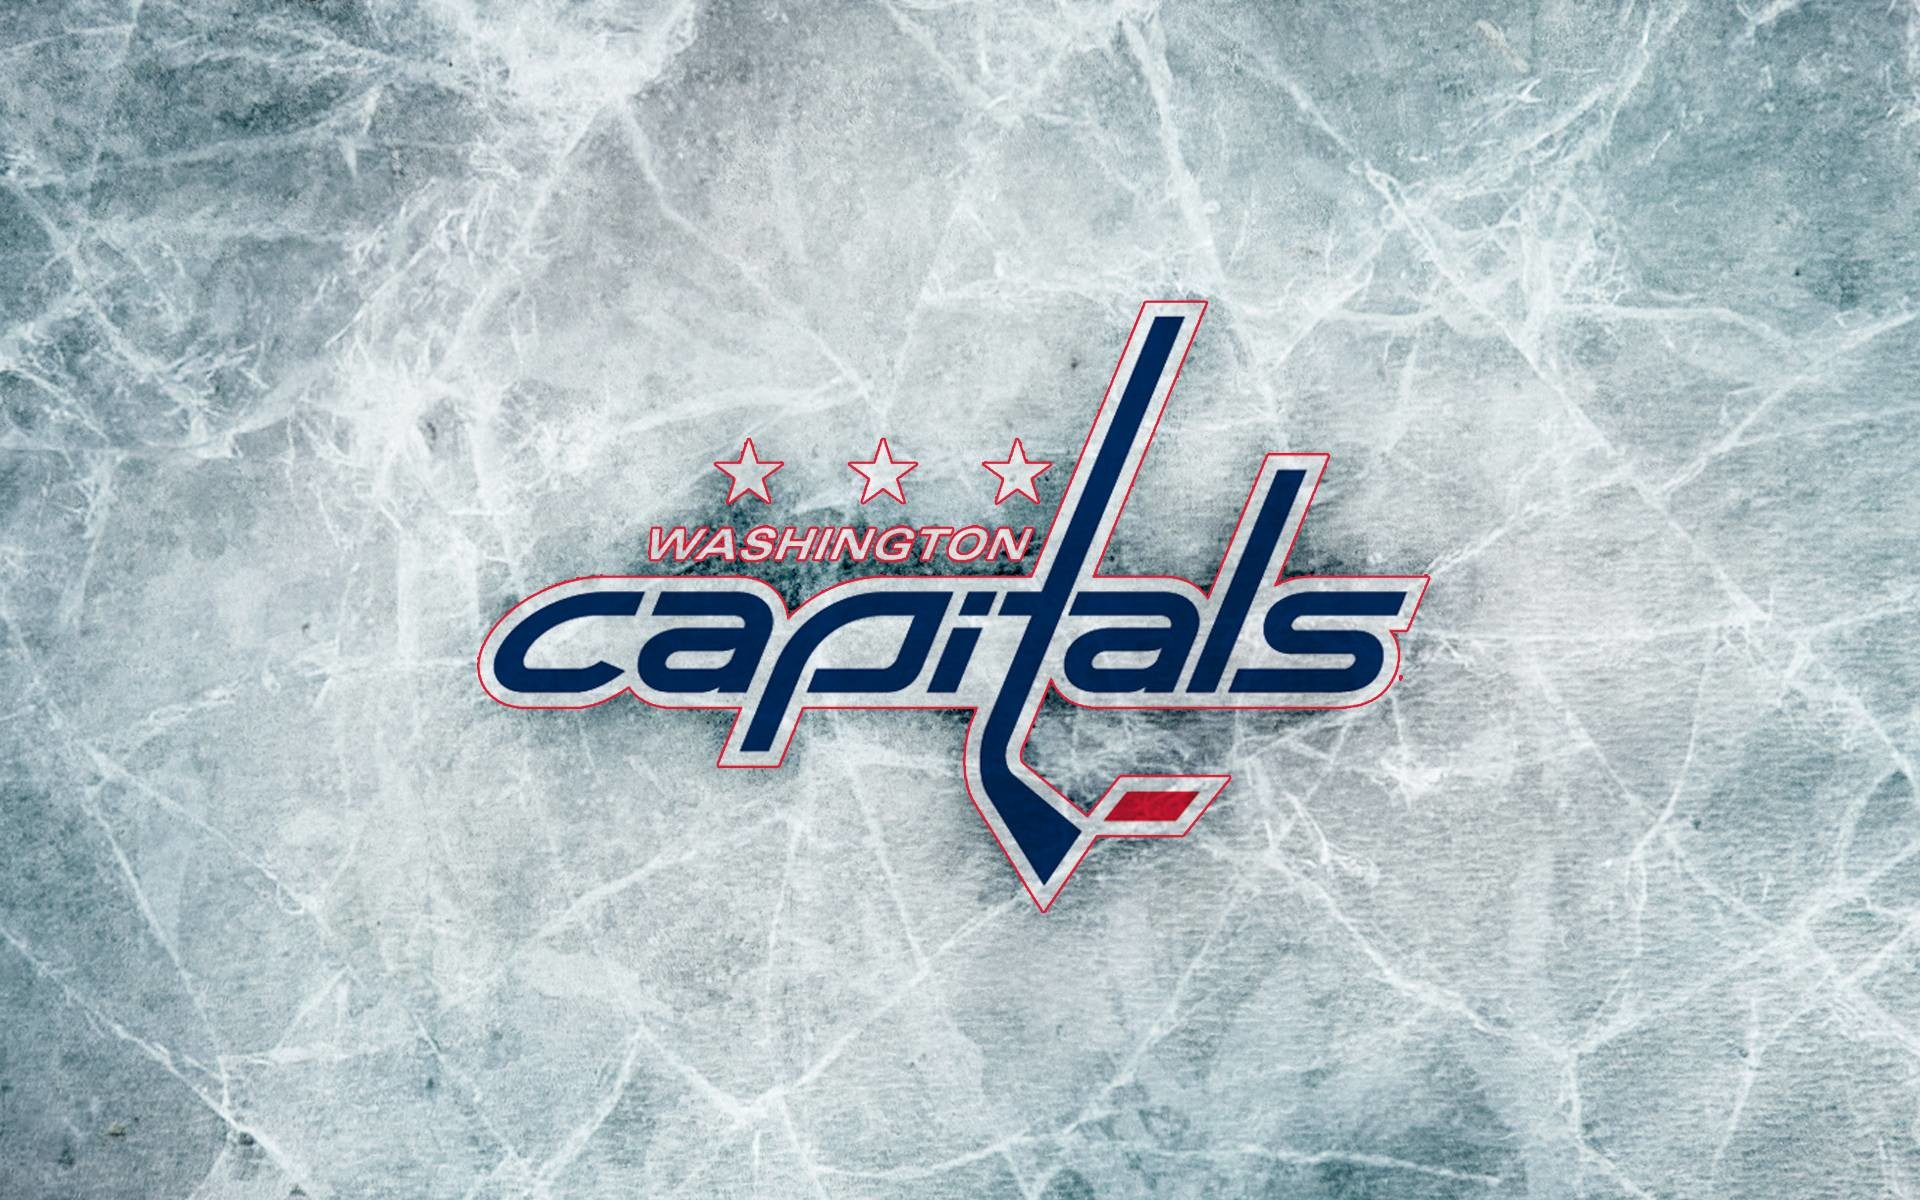 1920x1200 Washington Capitals Wallpaper Wide 12 Full | Wallpaperiz.com